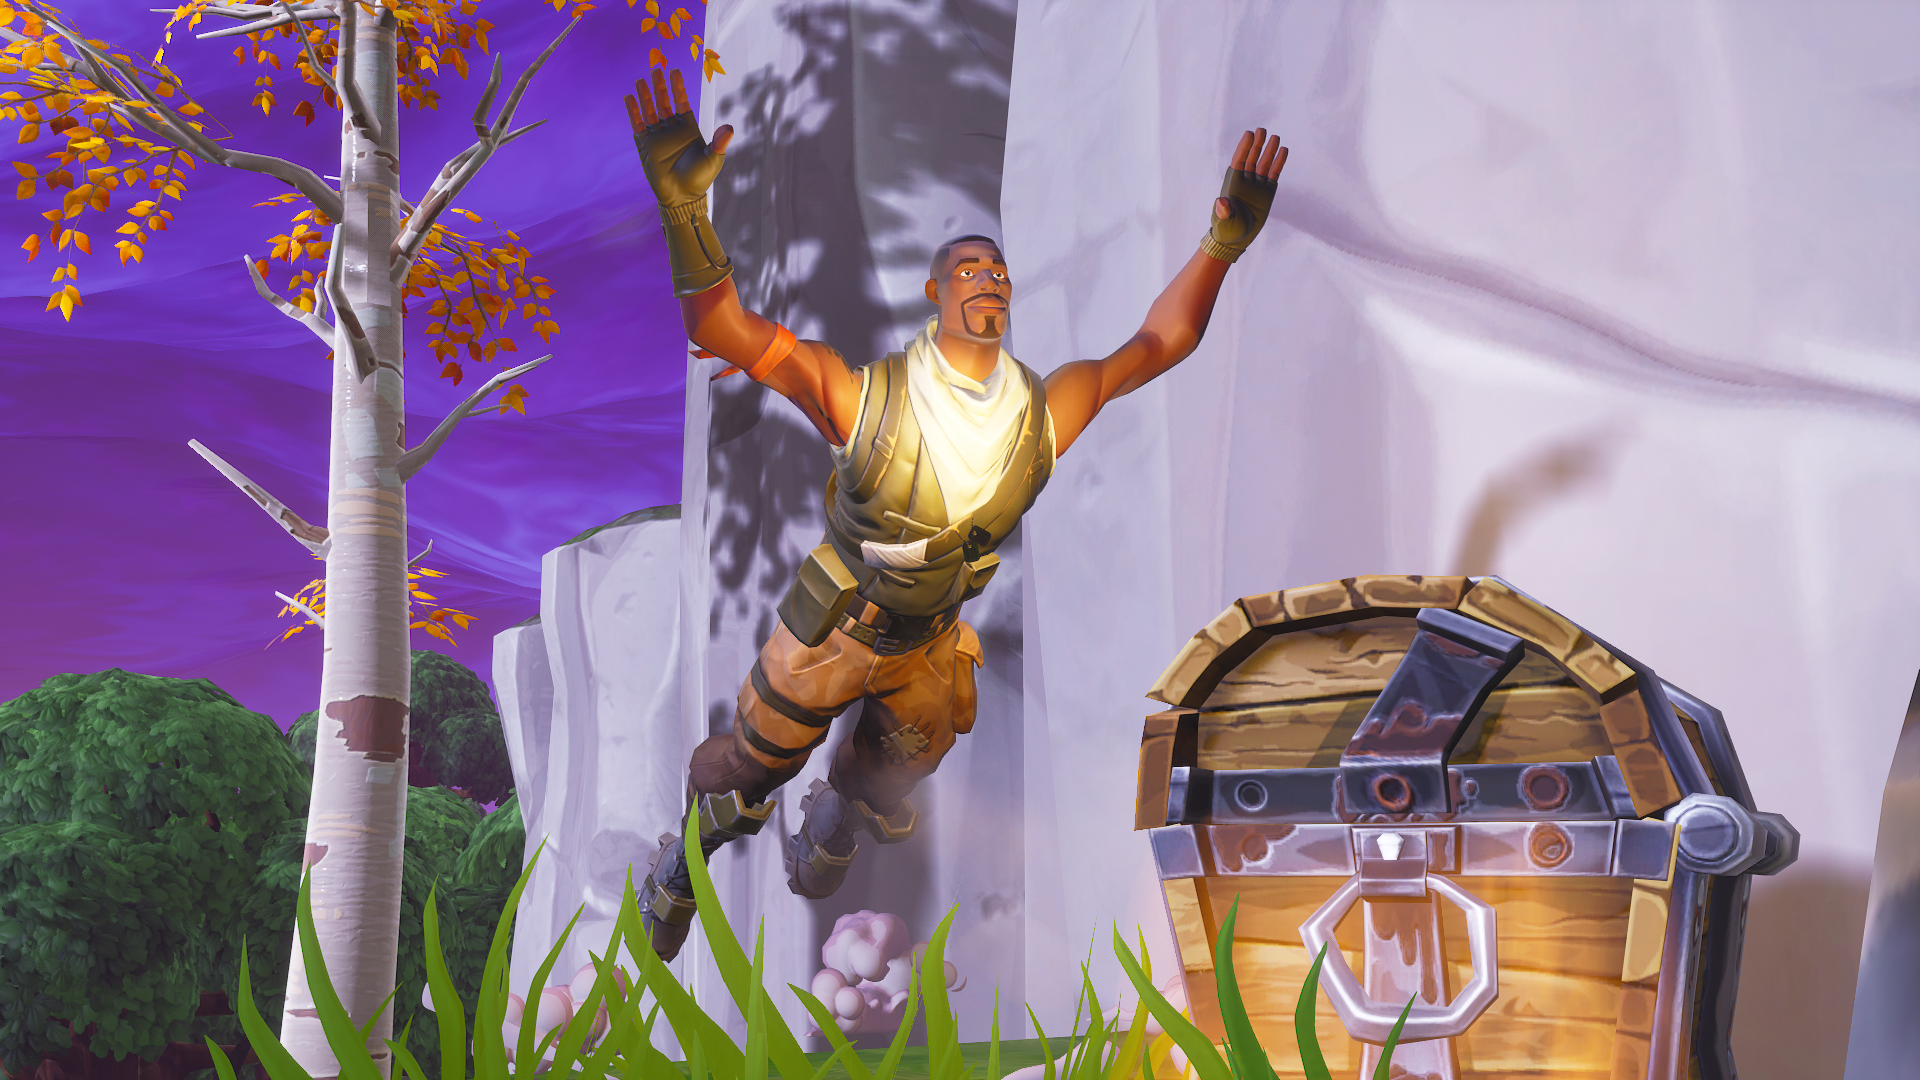 Fortnite Review Trusted Reviews